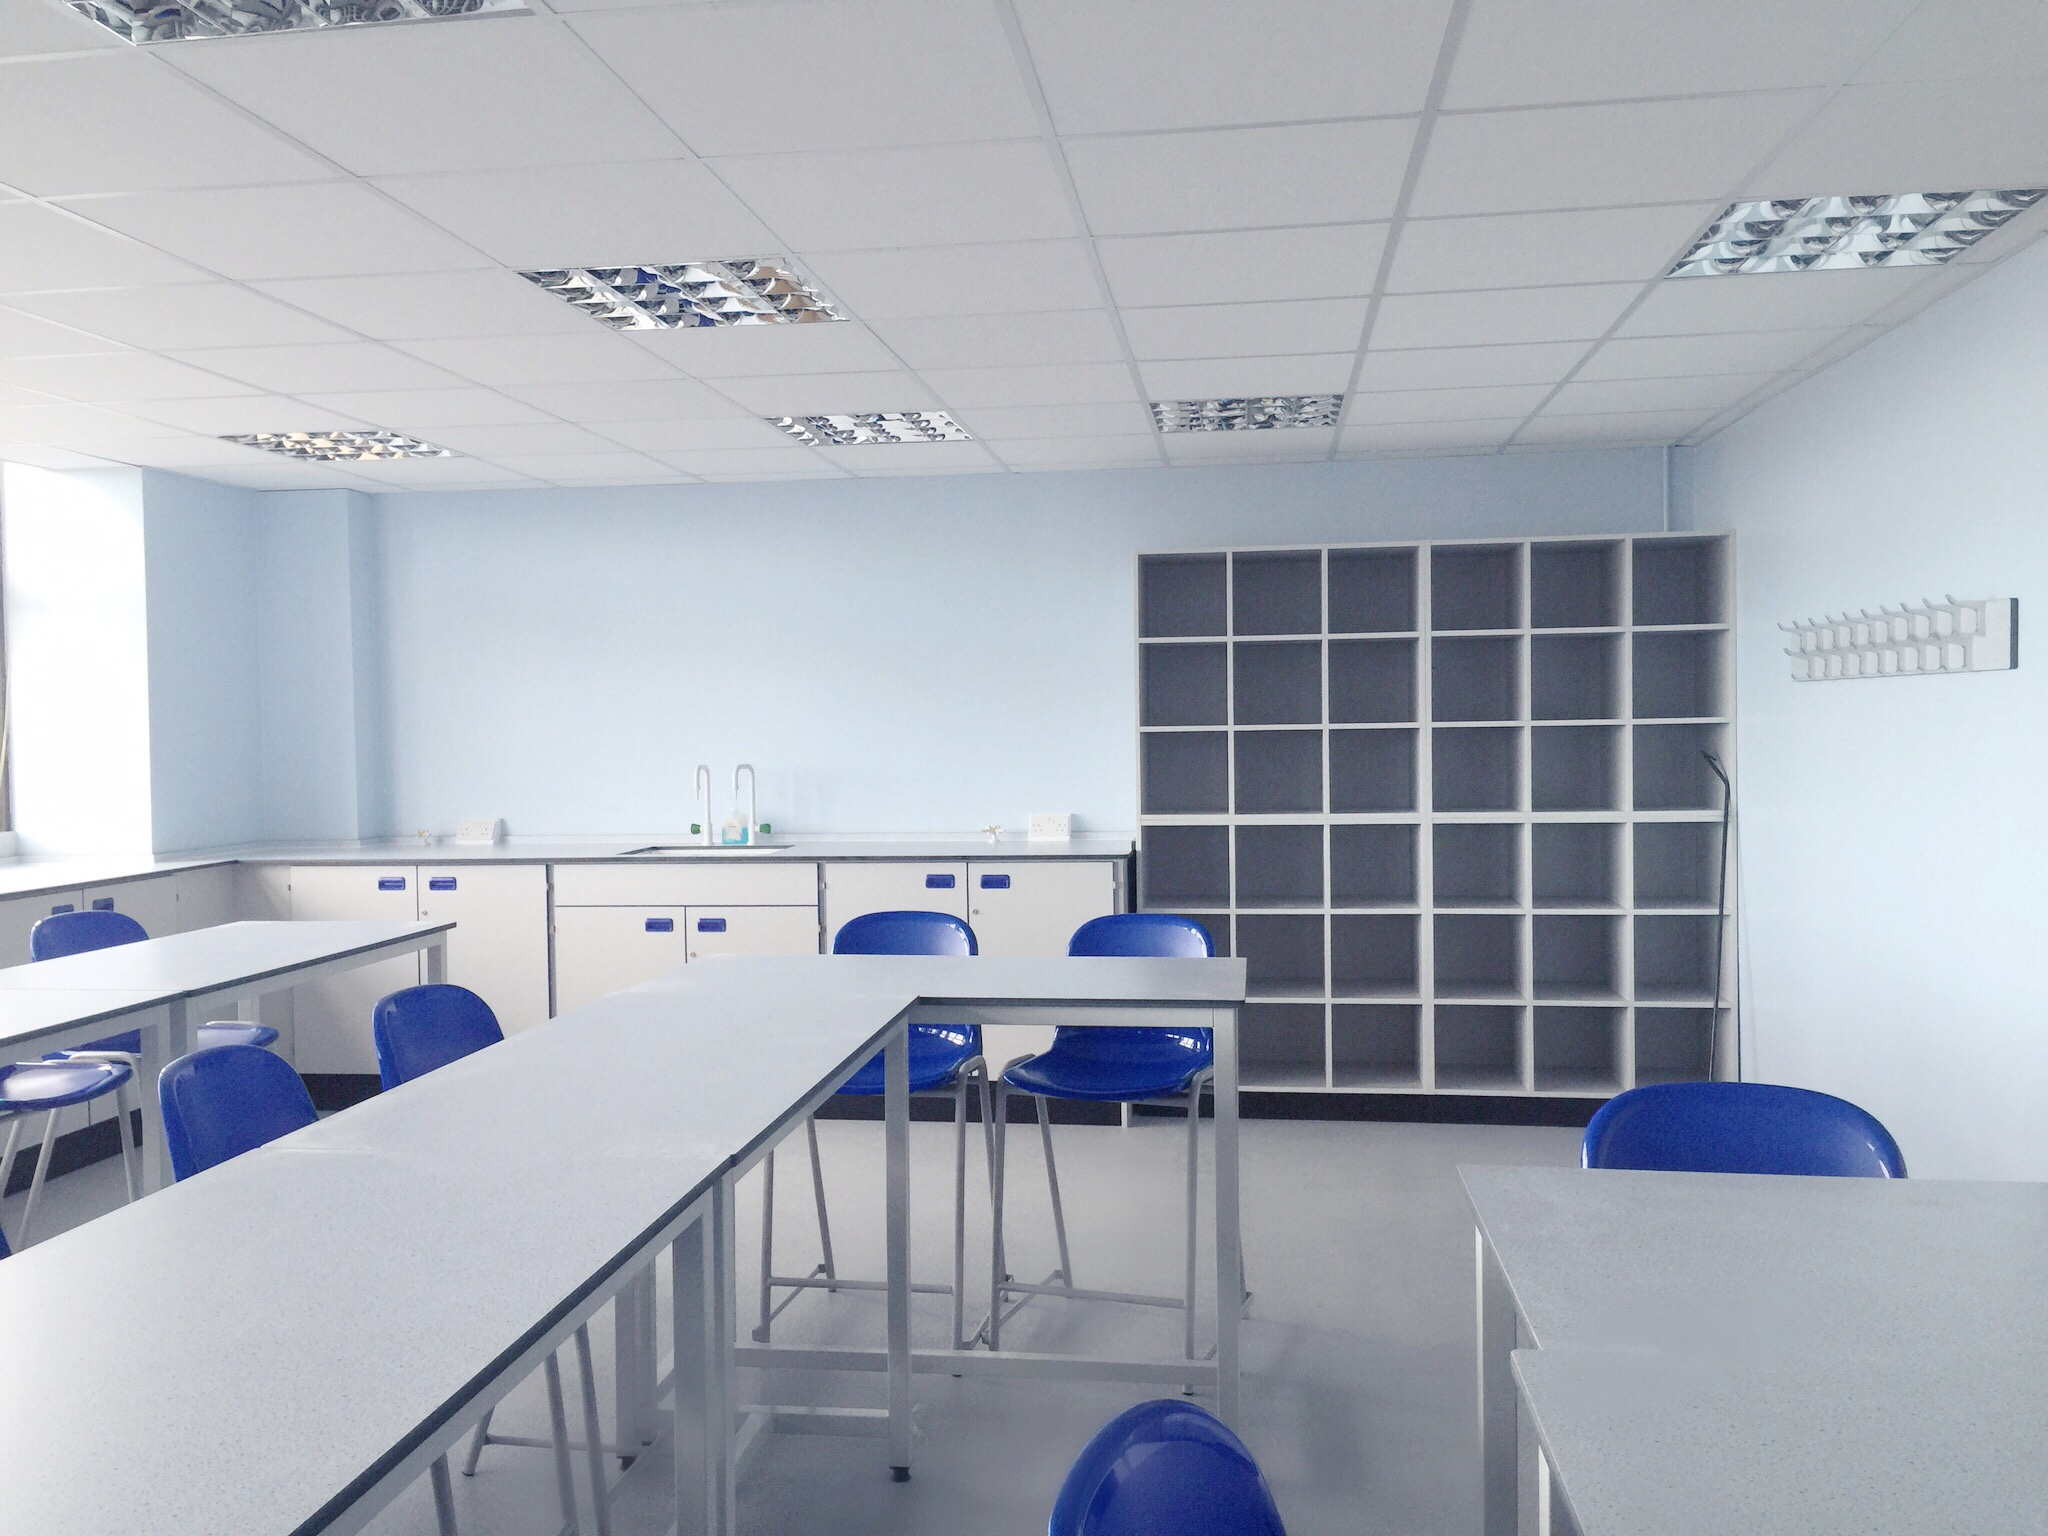 AJT Laboratory Furniture Design Trespa Toplab School Furniture associated Joinery Techniques 15.jpg